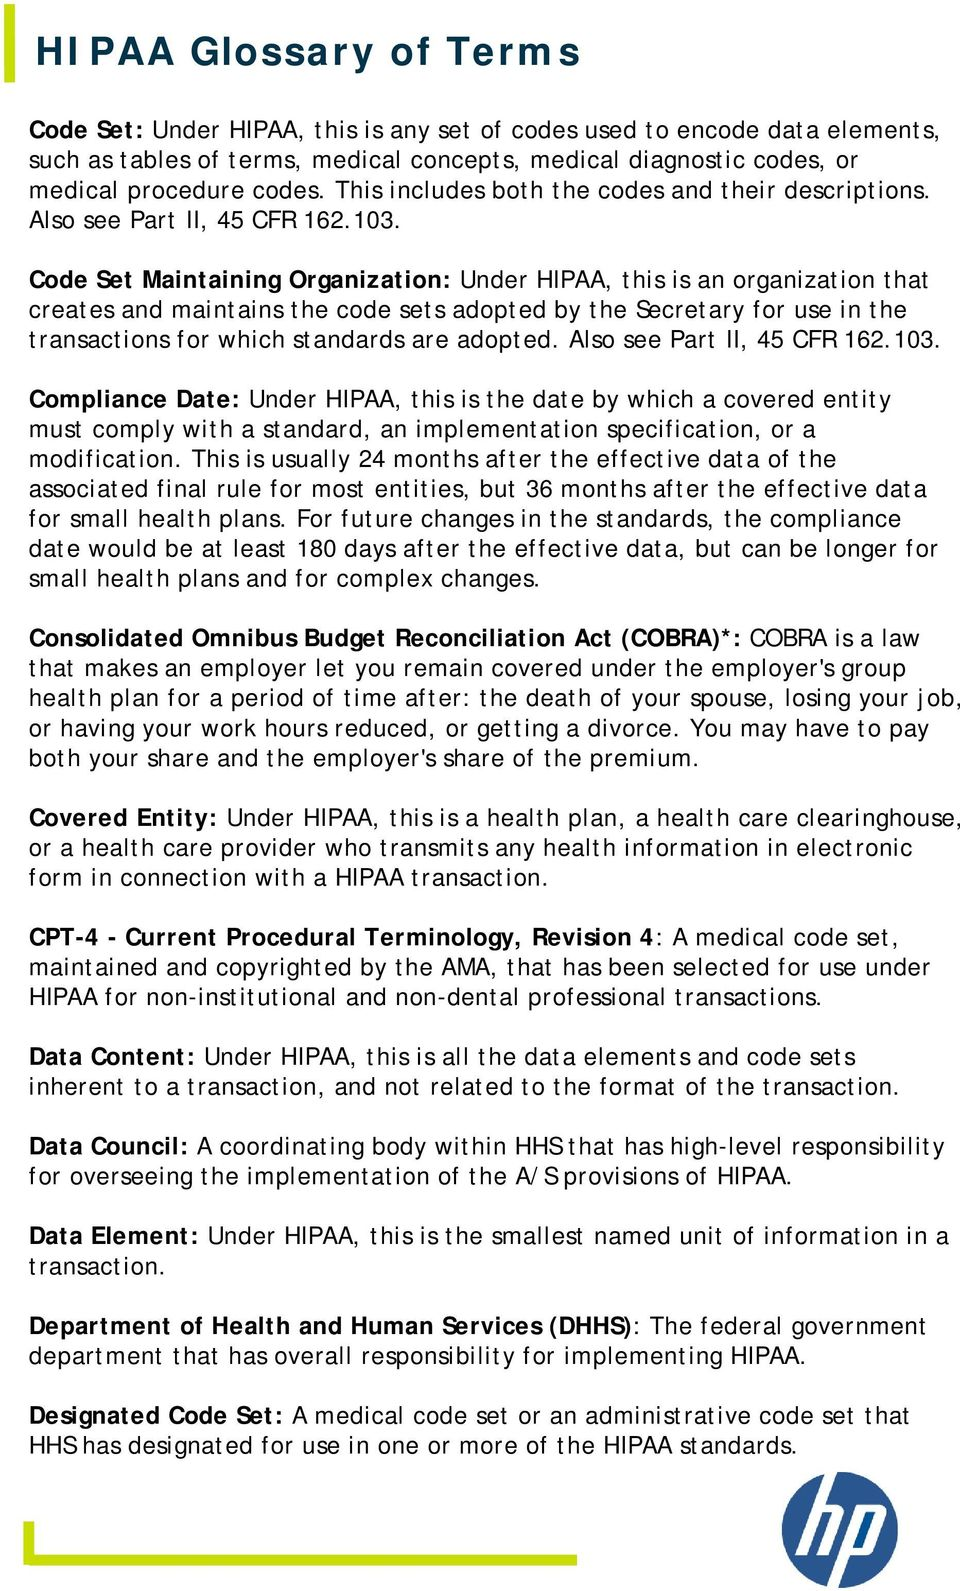 Code Set Maintaining Organization: Under HIPAA, this is an organization that creates and maintains the code sets adopted by the Secretary for use in the transactions for which standards are adopted.